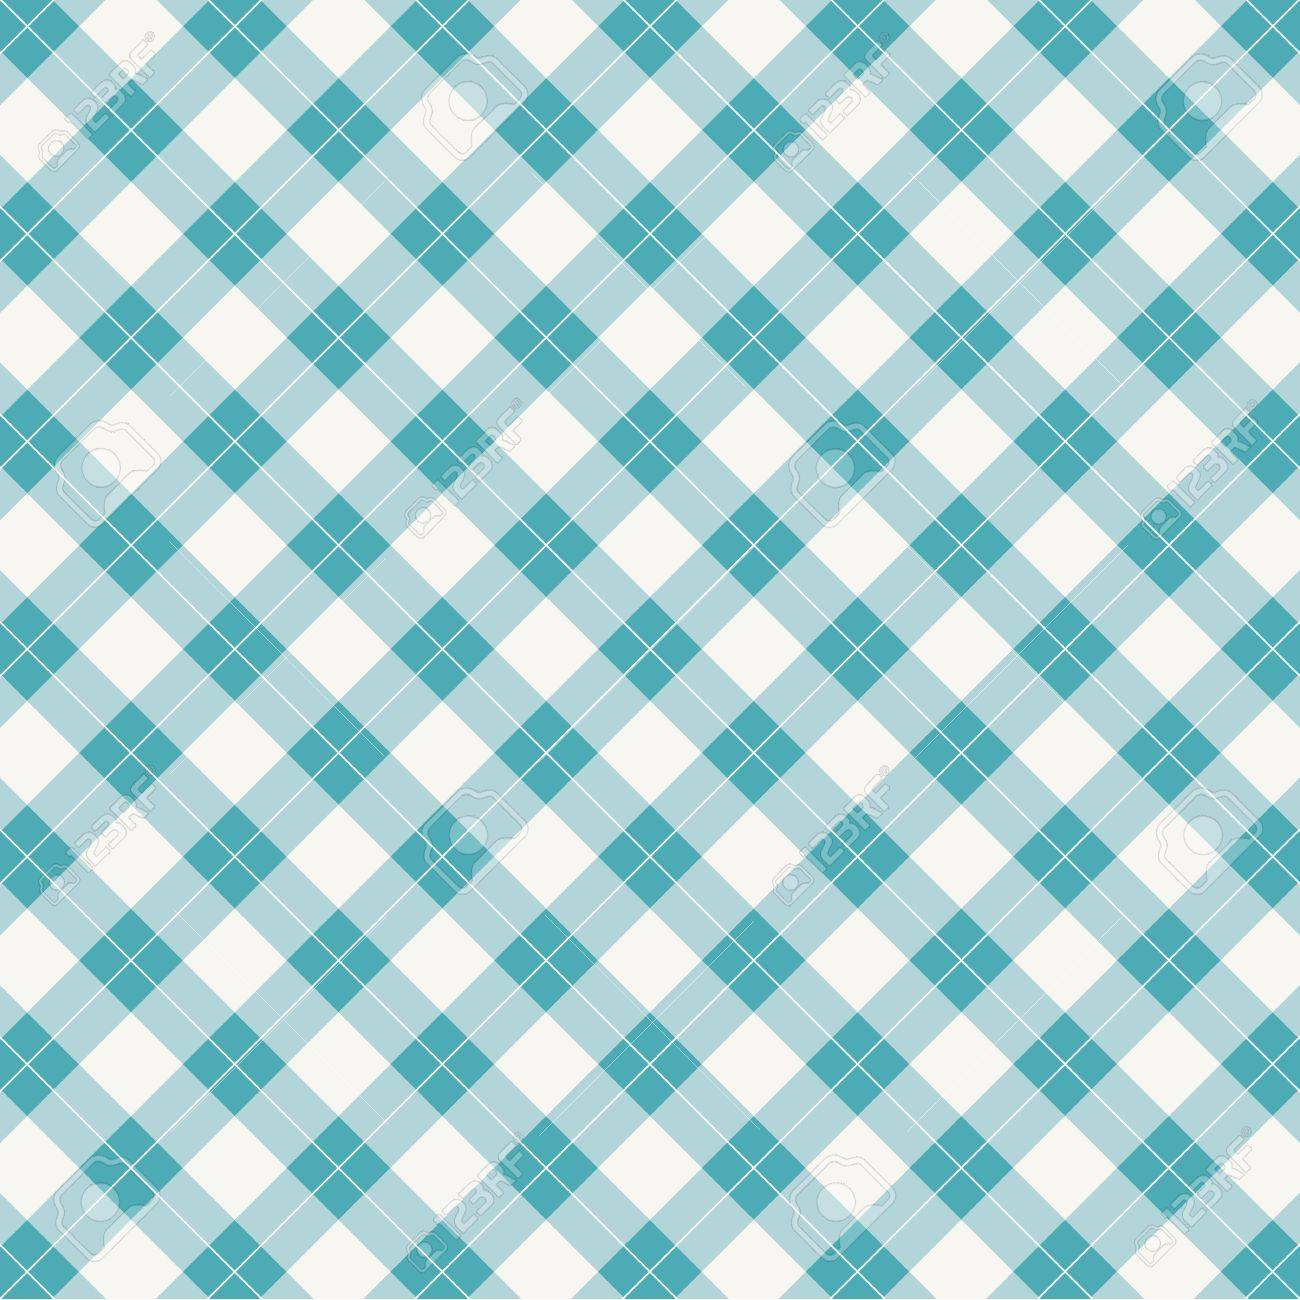 background retro vintage gingham tablecloth seamless pattern Stock Vector - 22497588